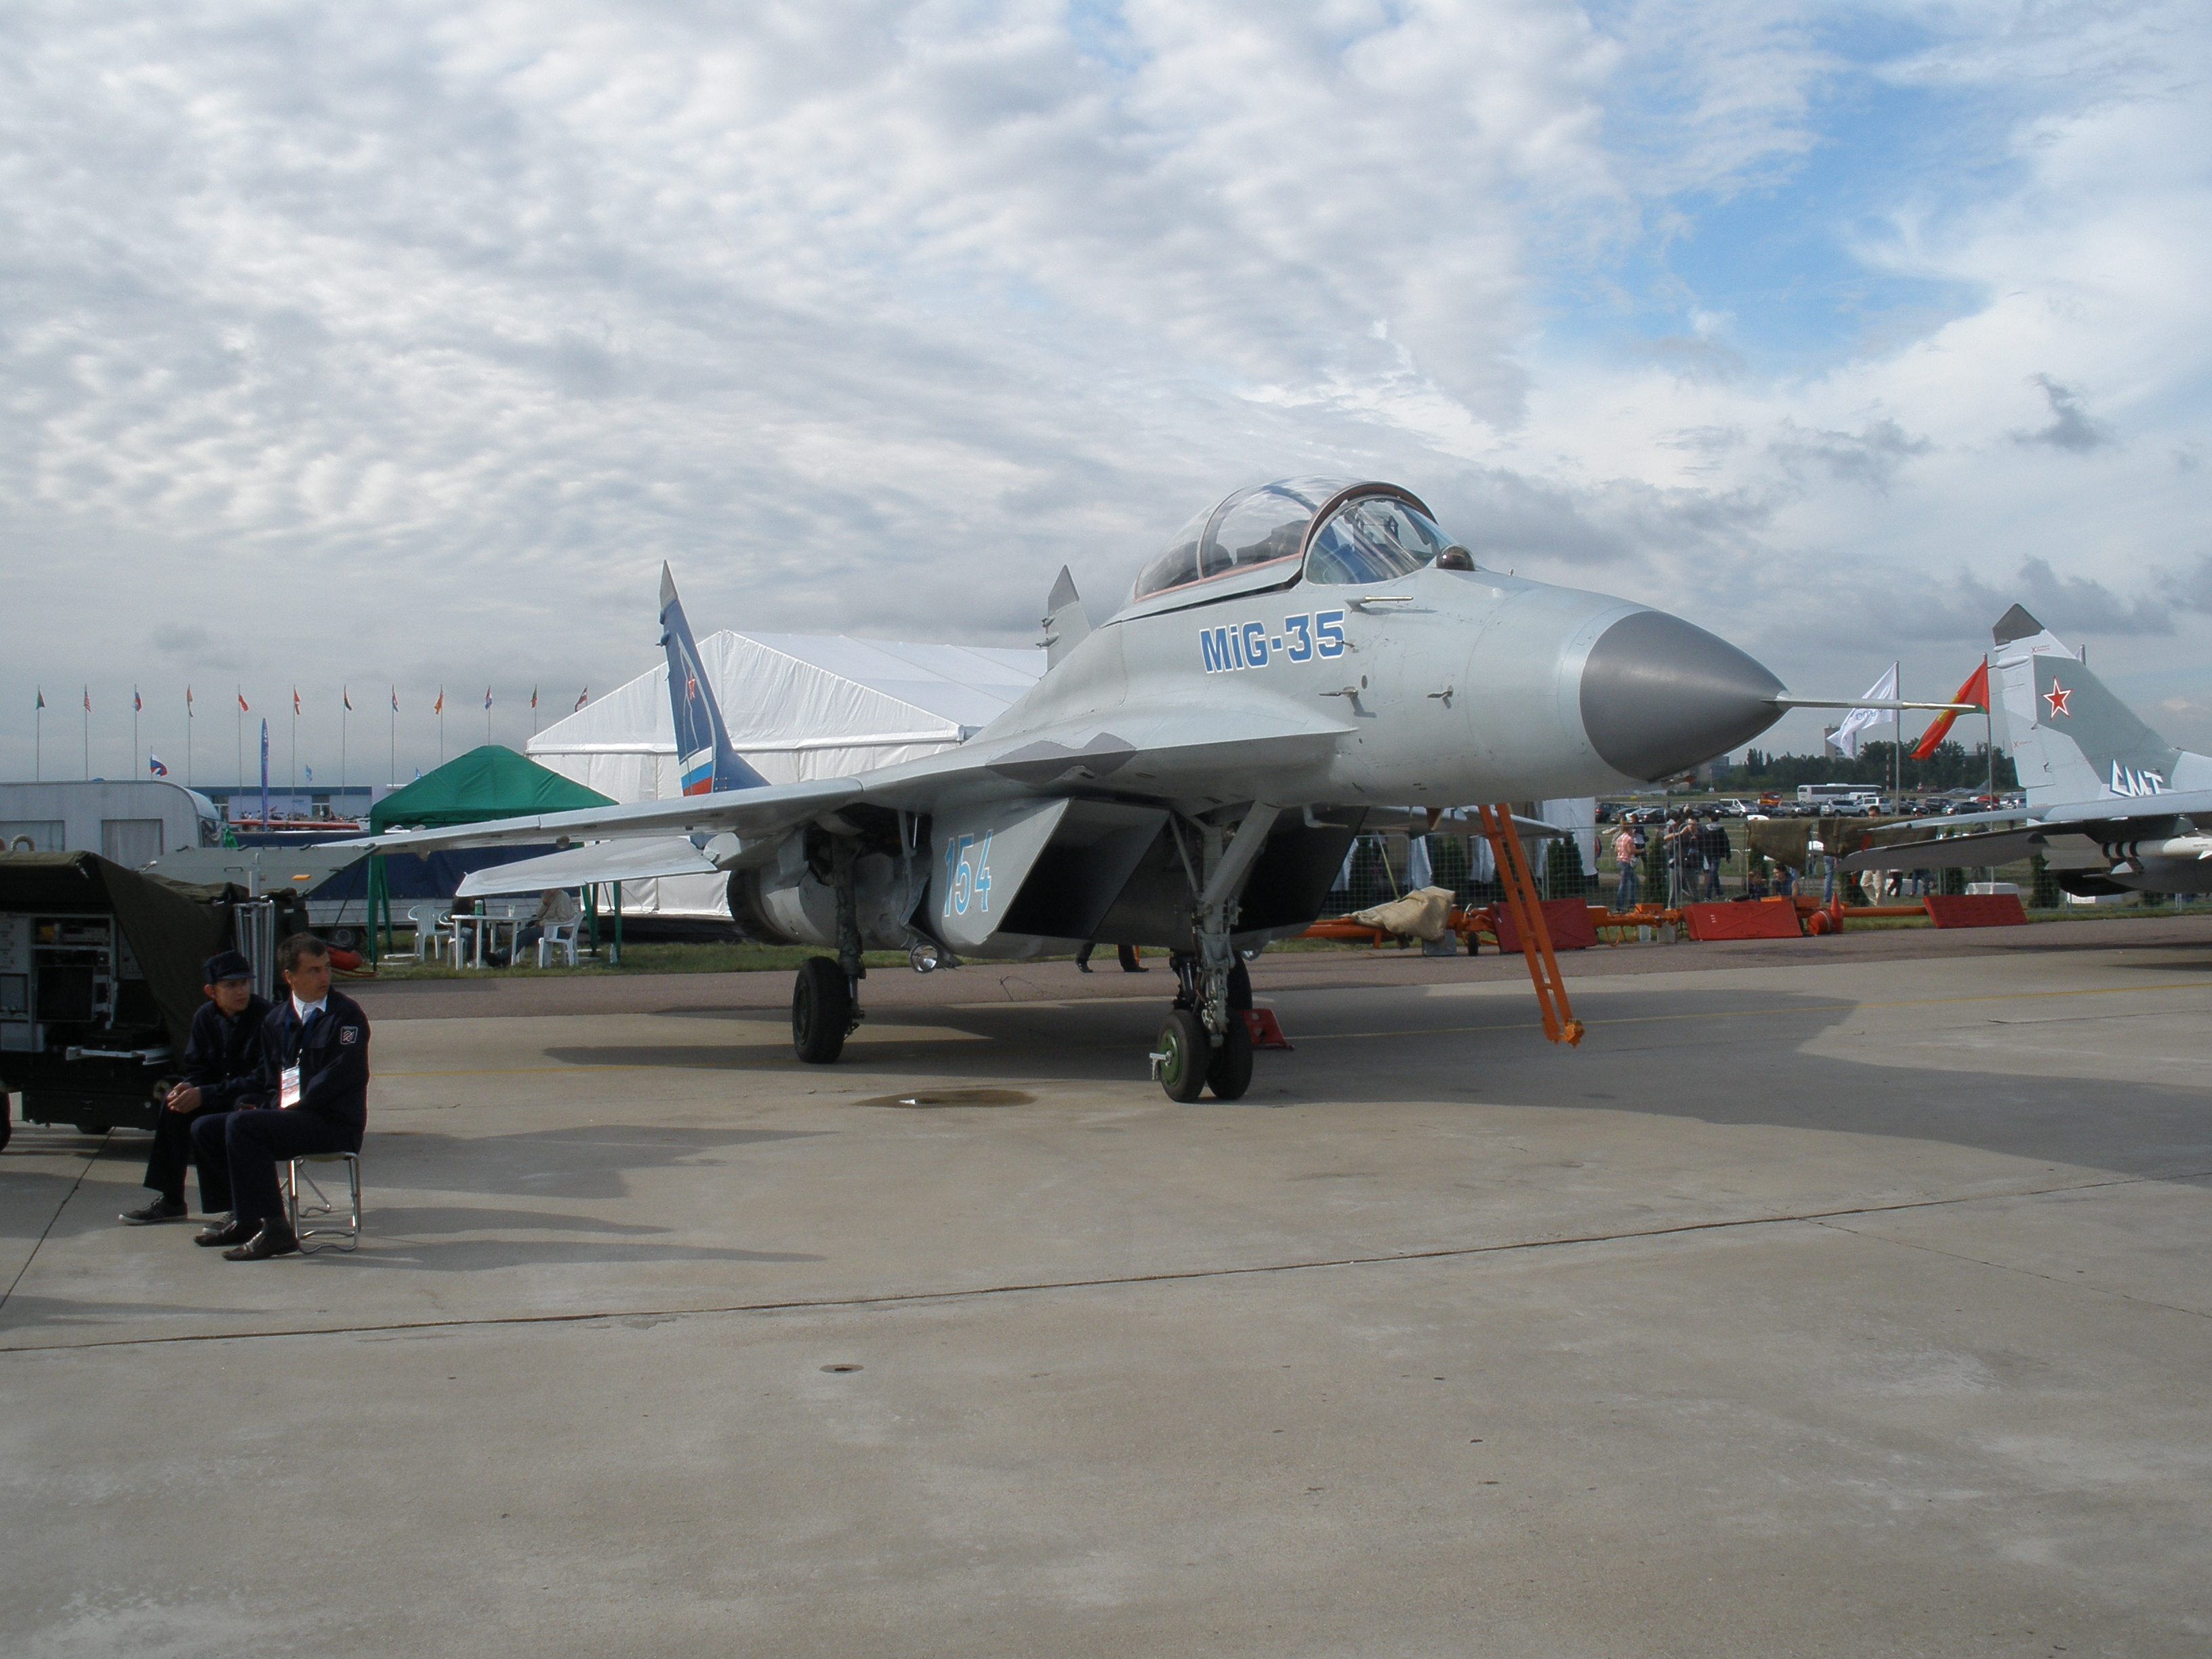 Gallery For > Mig 35 Wallpapers